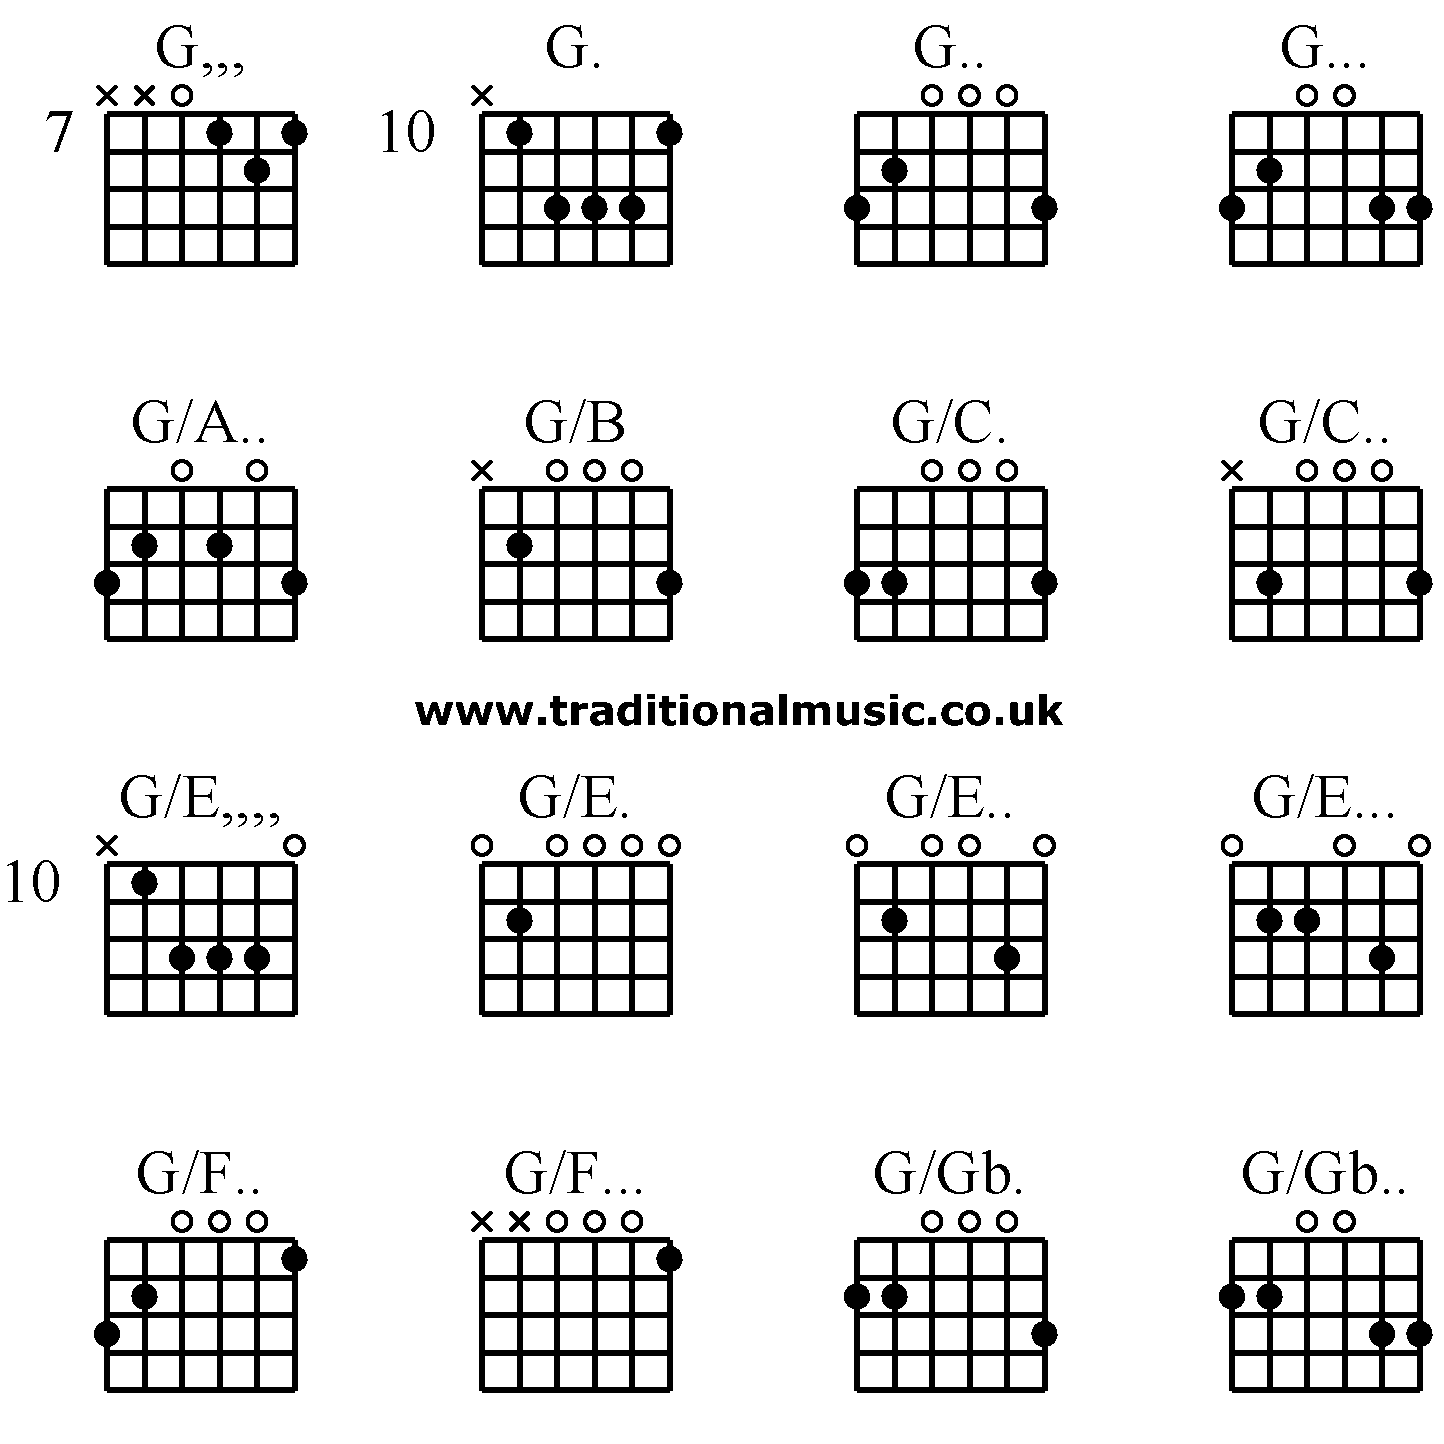 Advanced Guitar Chords G G G G G A G B G C G